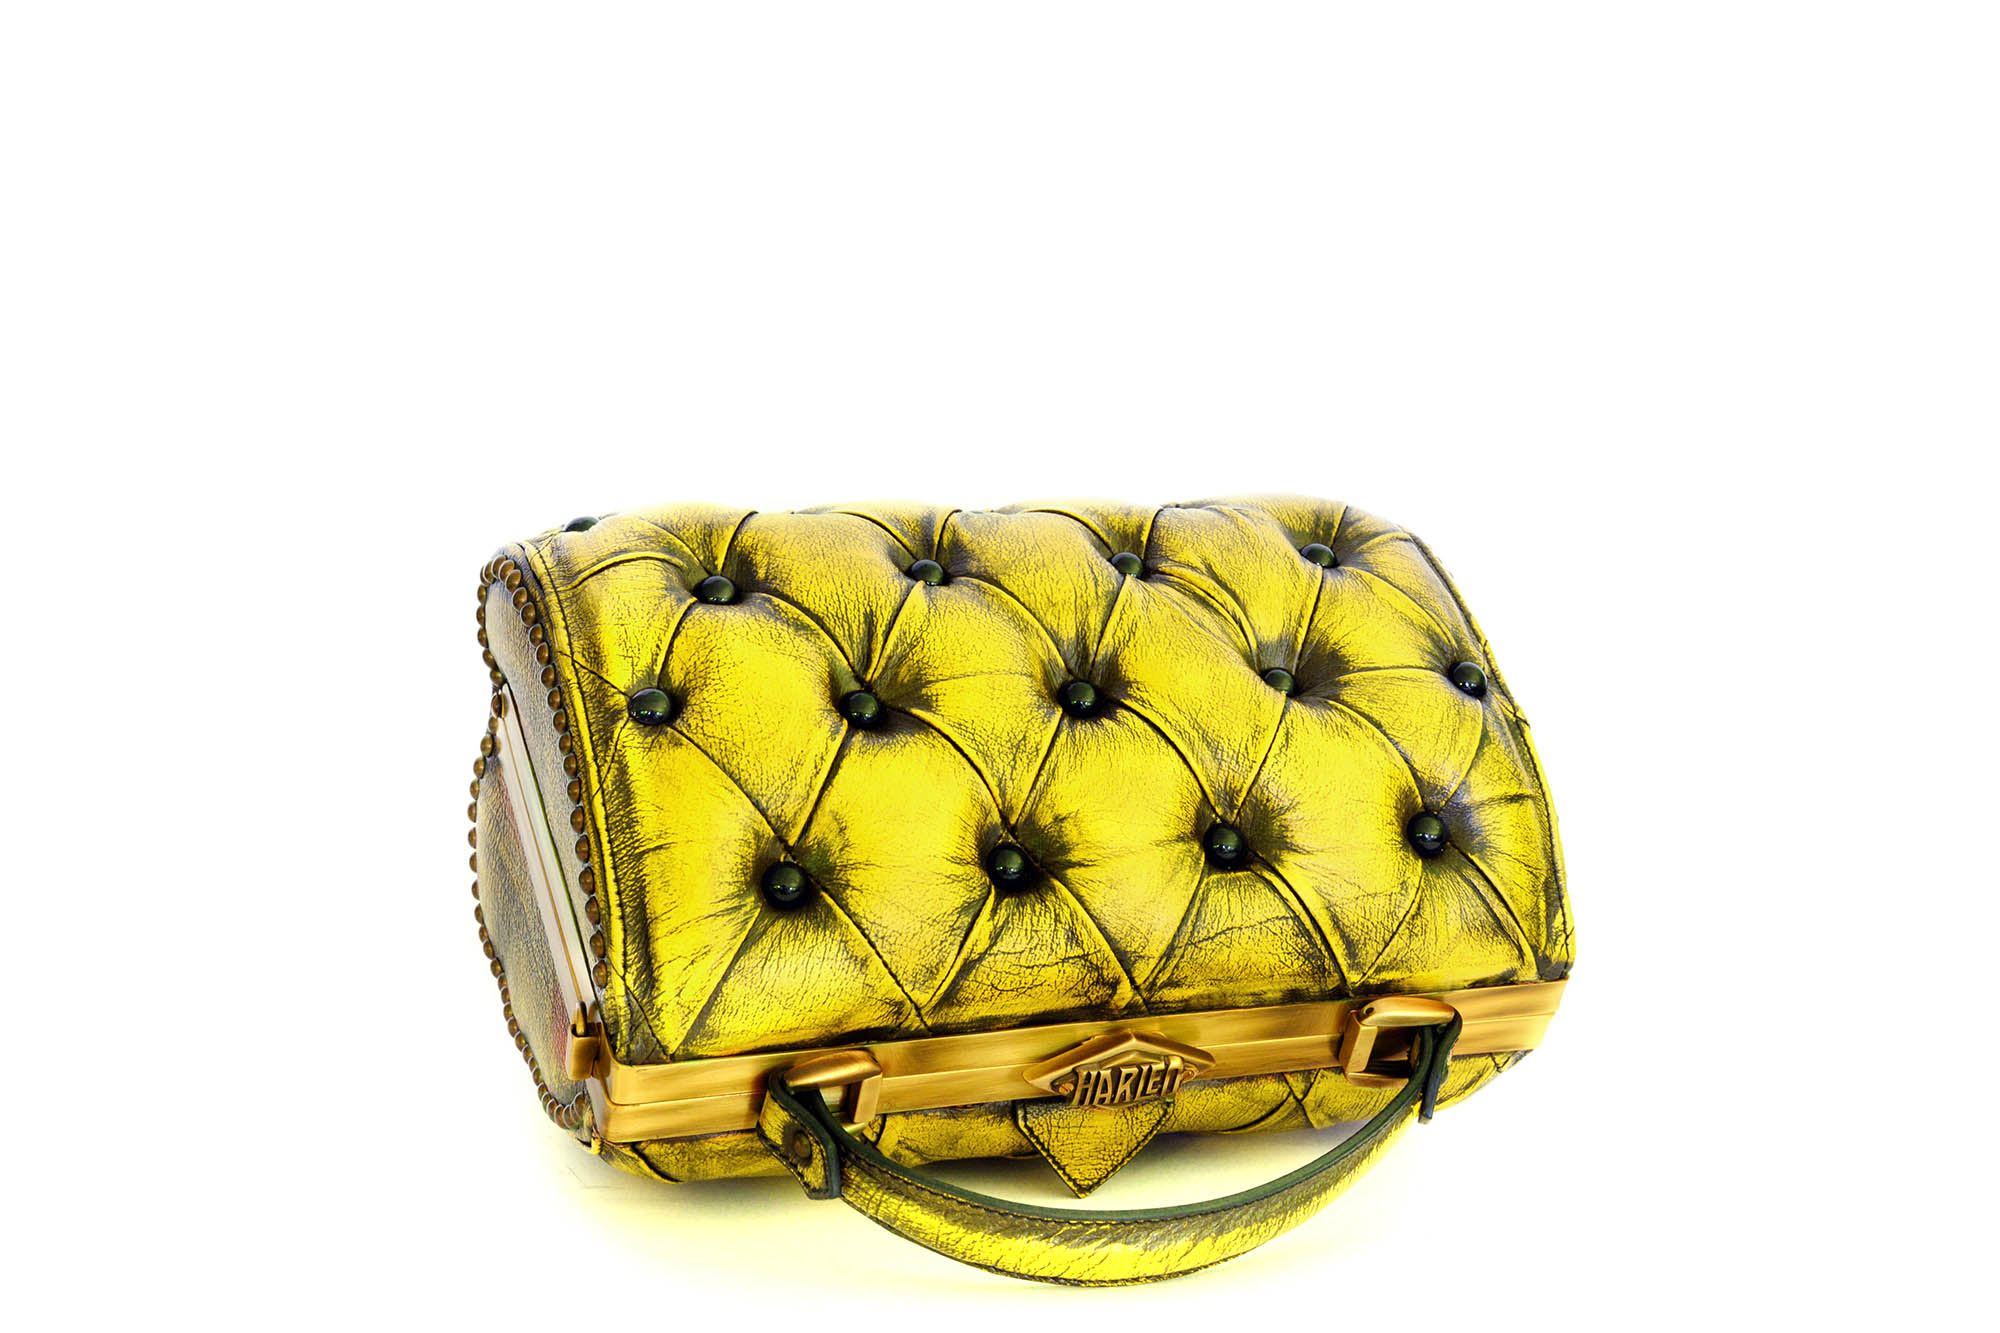 harleq-yellow-bag-leather-lemon-bag